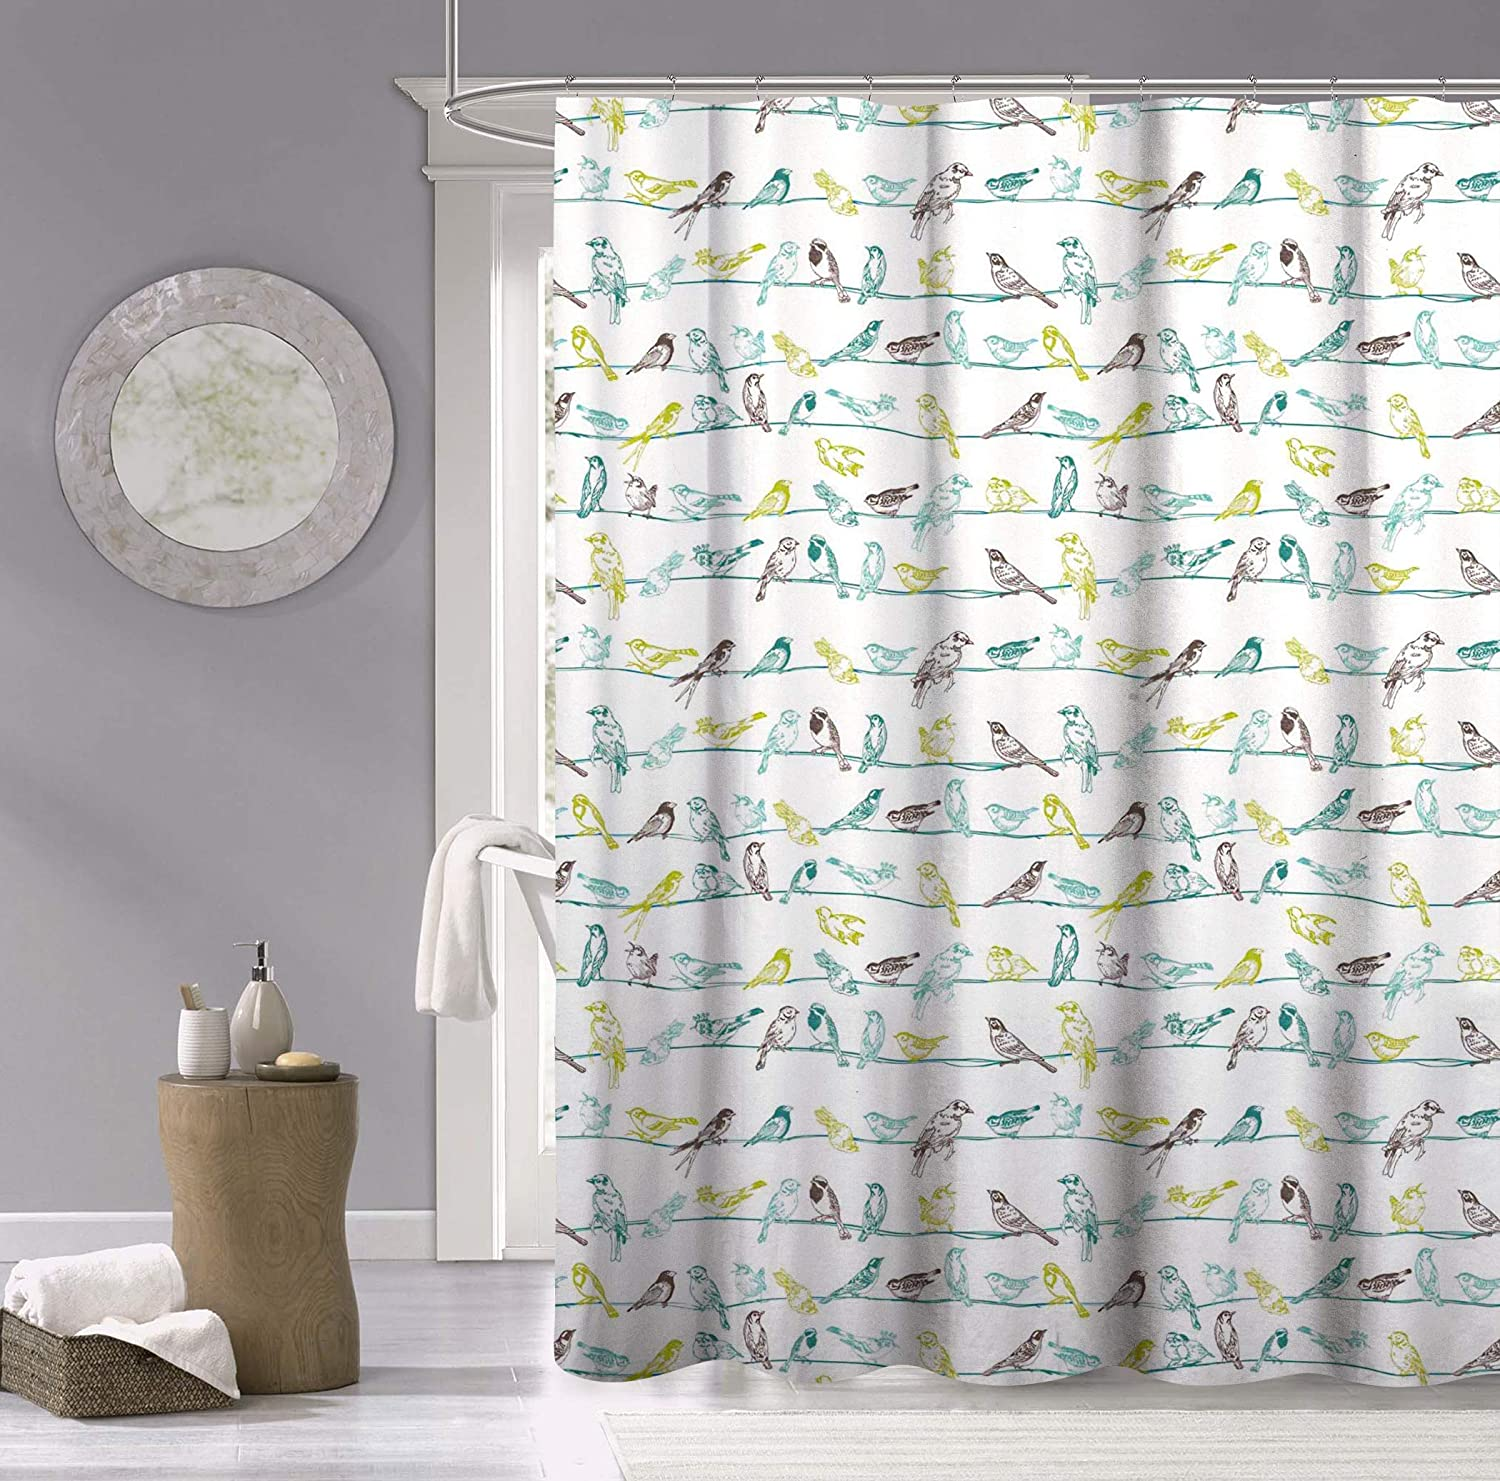 Dainty Home Birds 100% Cotton Fabric Shower Curtain, Multicolor